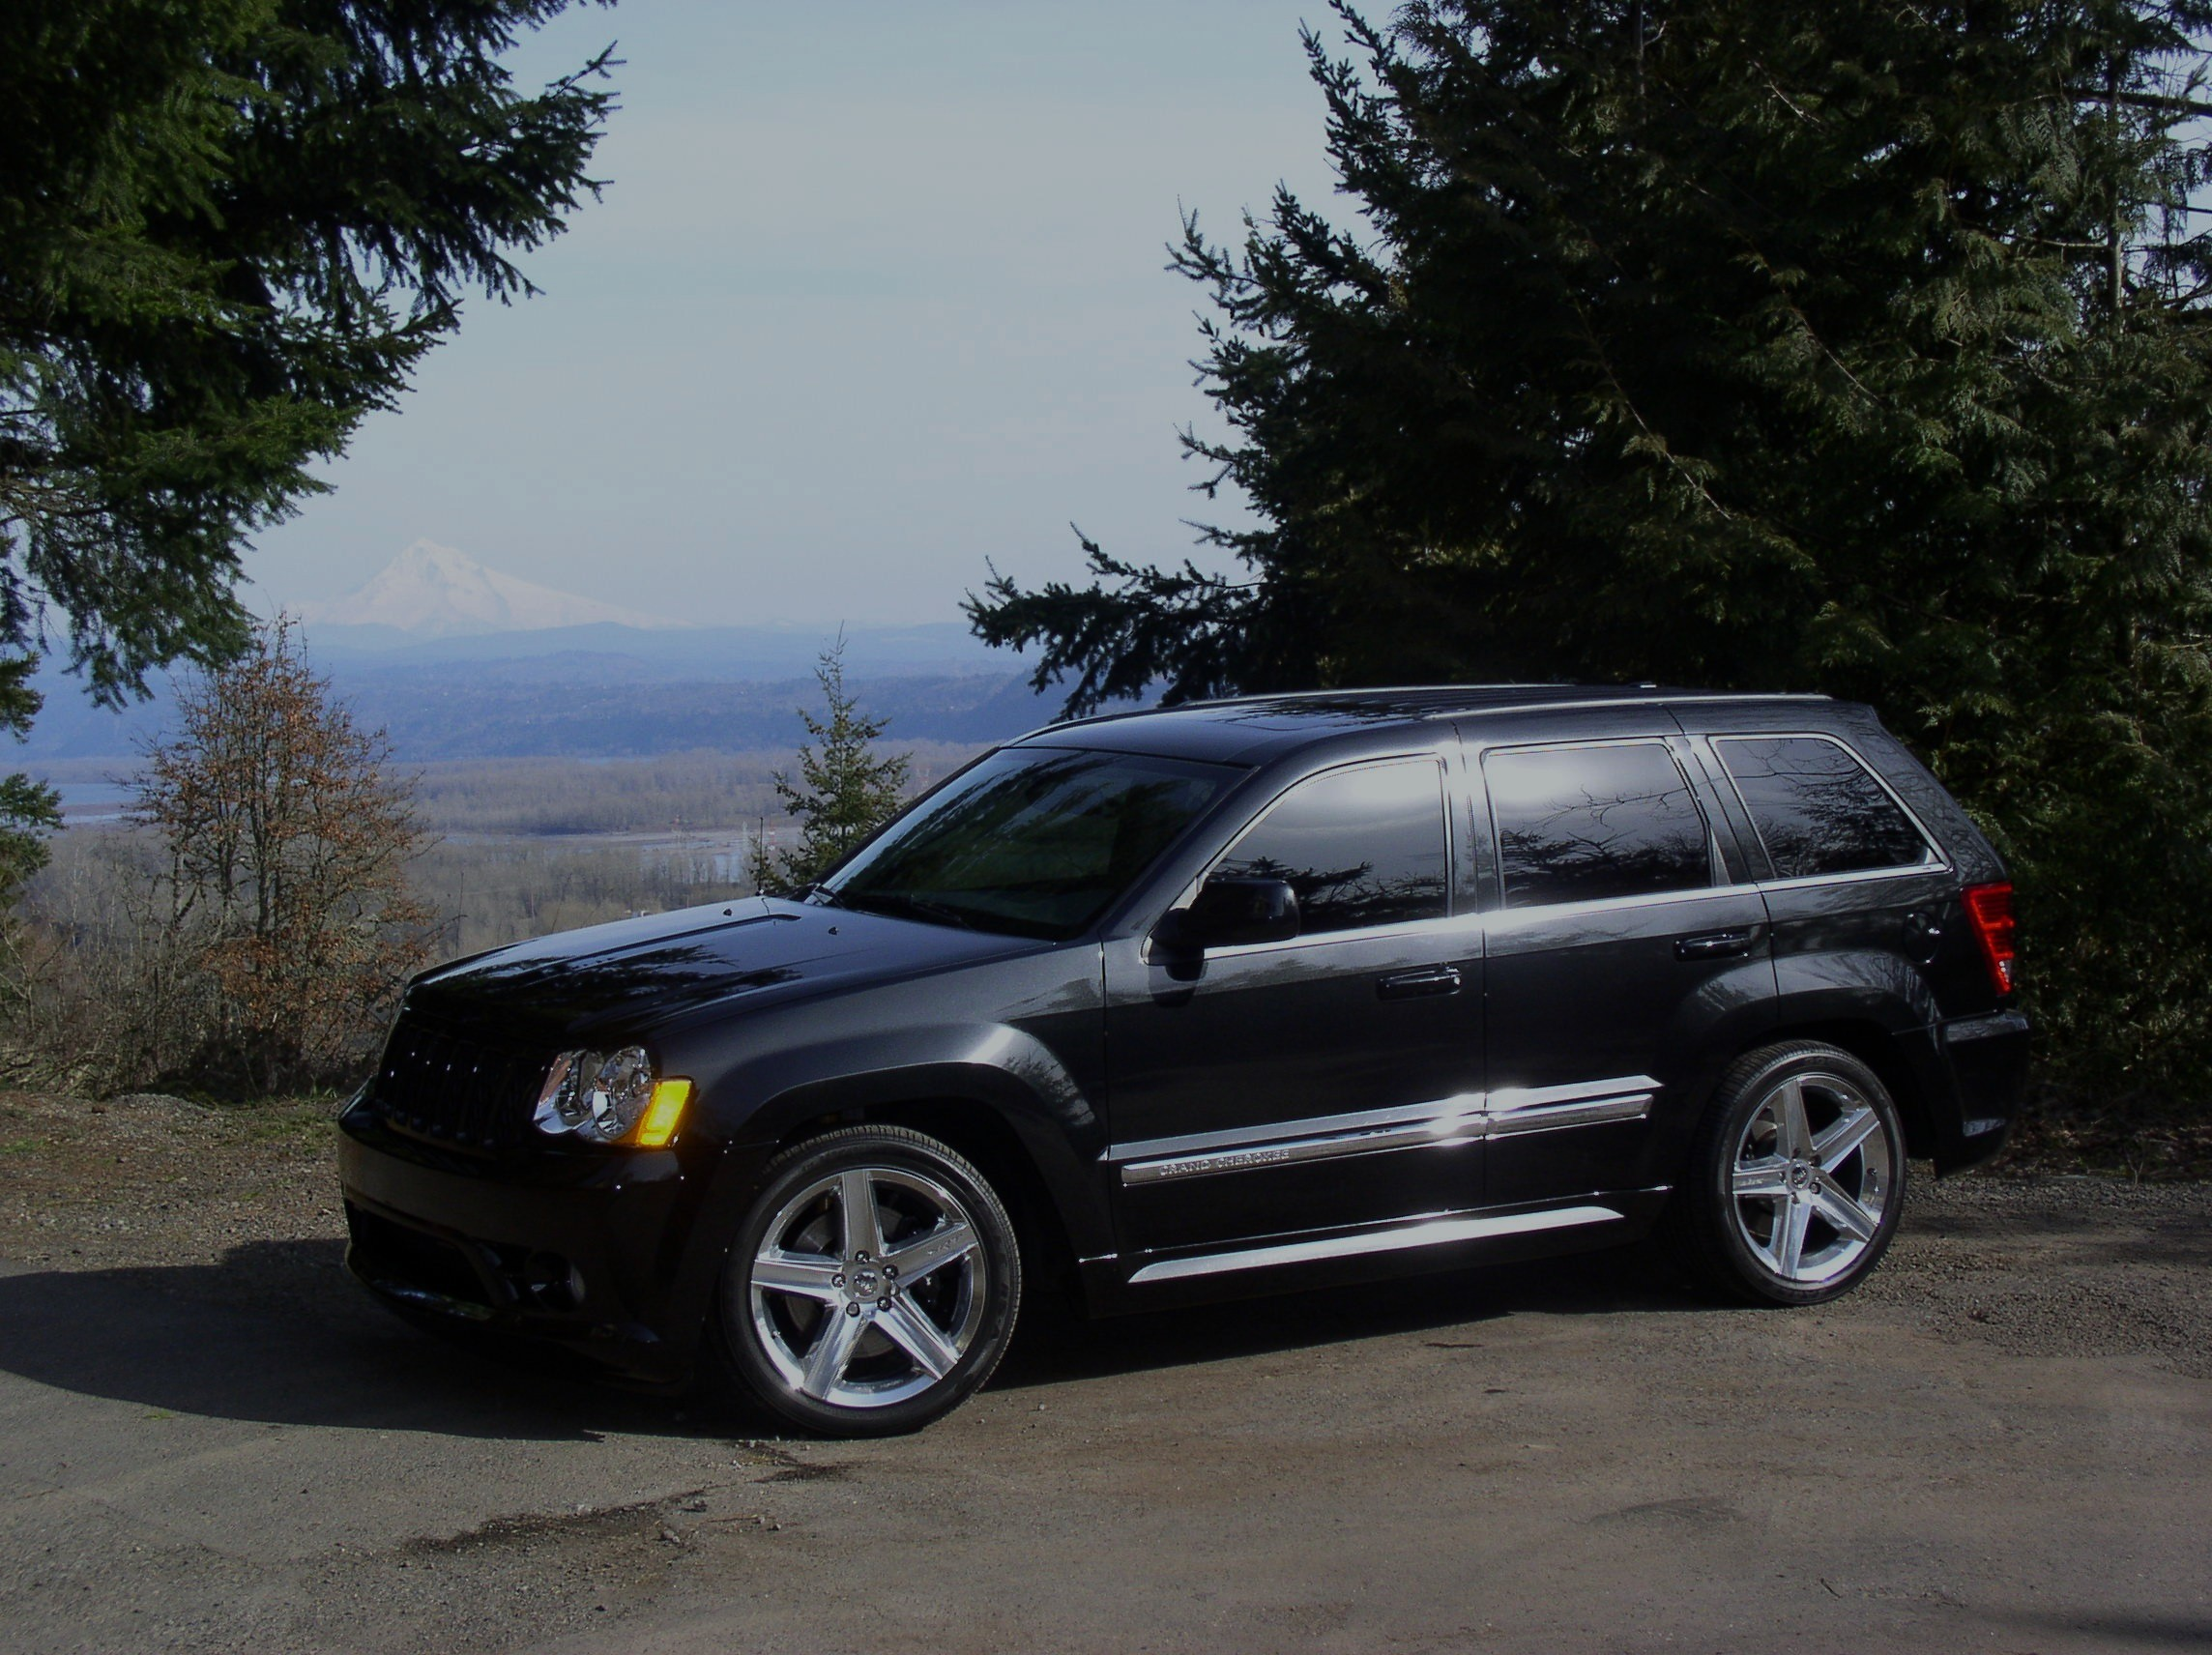 mandan007 39 s 2008 jeep grand cherokee srt8 sport utility 4d in vancouver wa. Black Bedroom Furniture Sets. Home Design Ideas